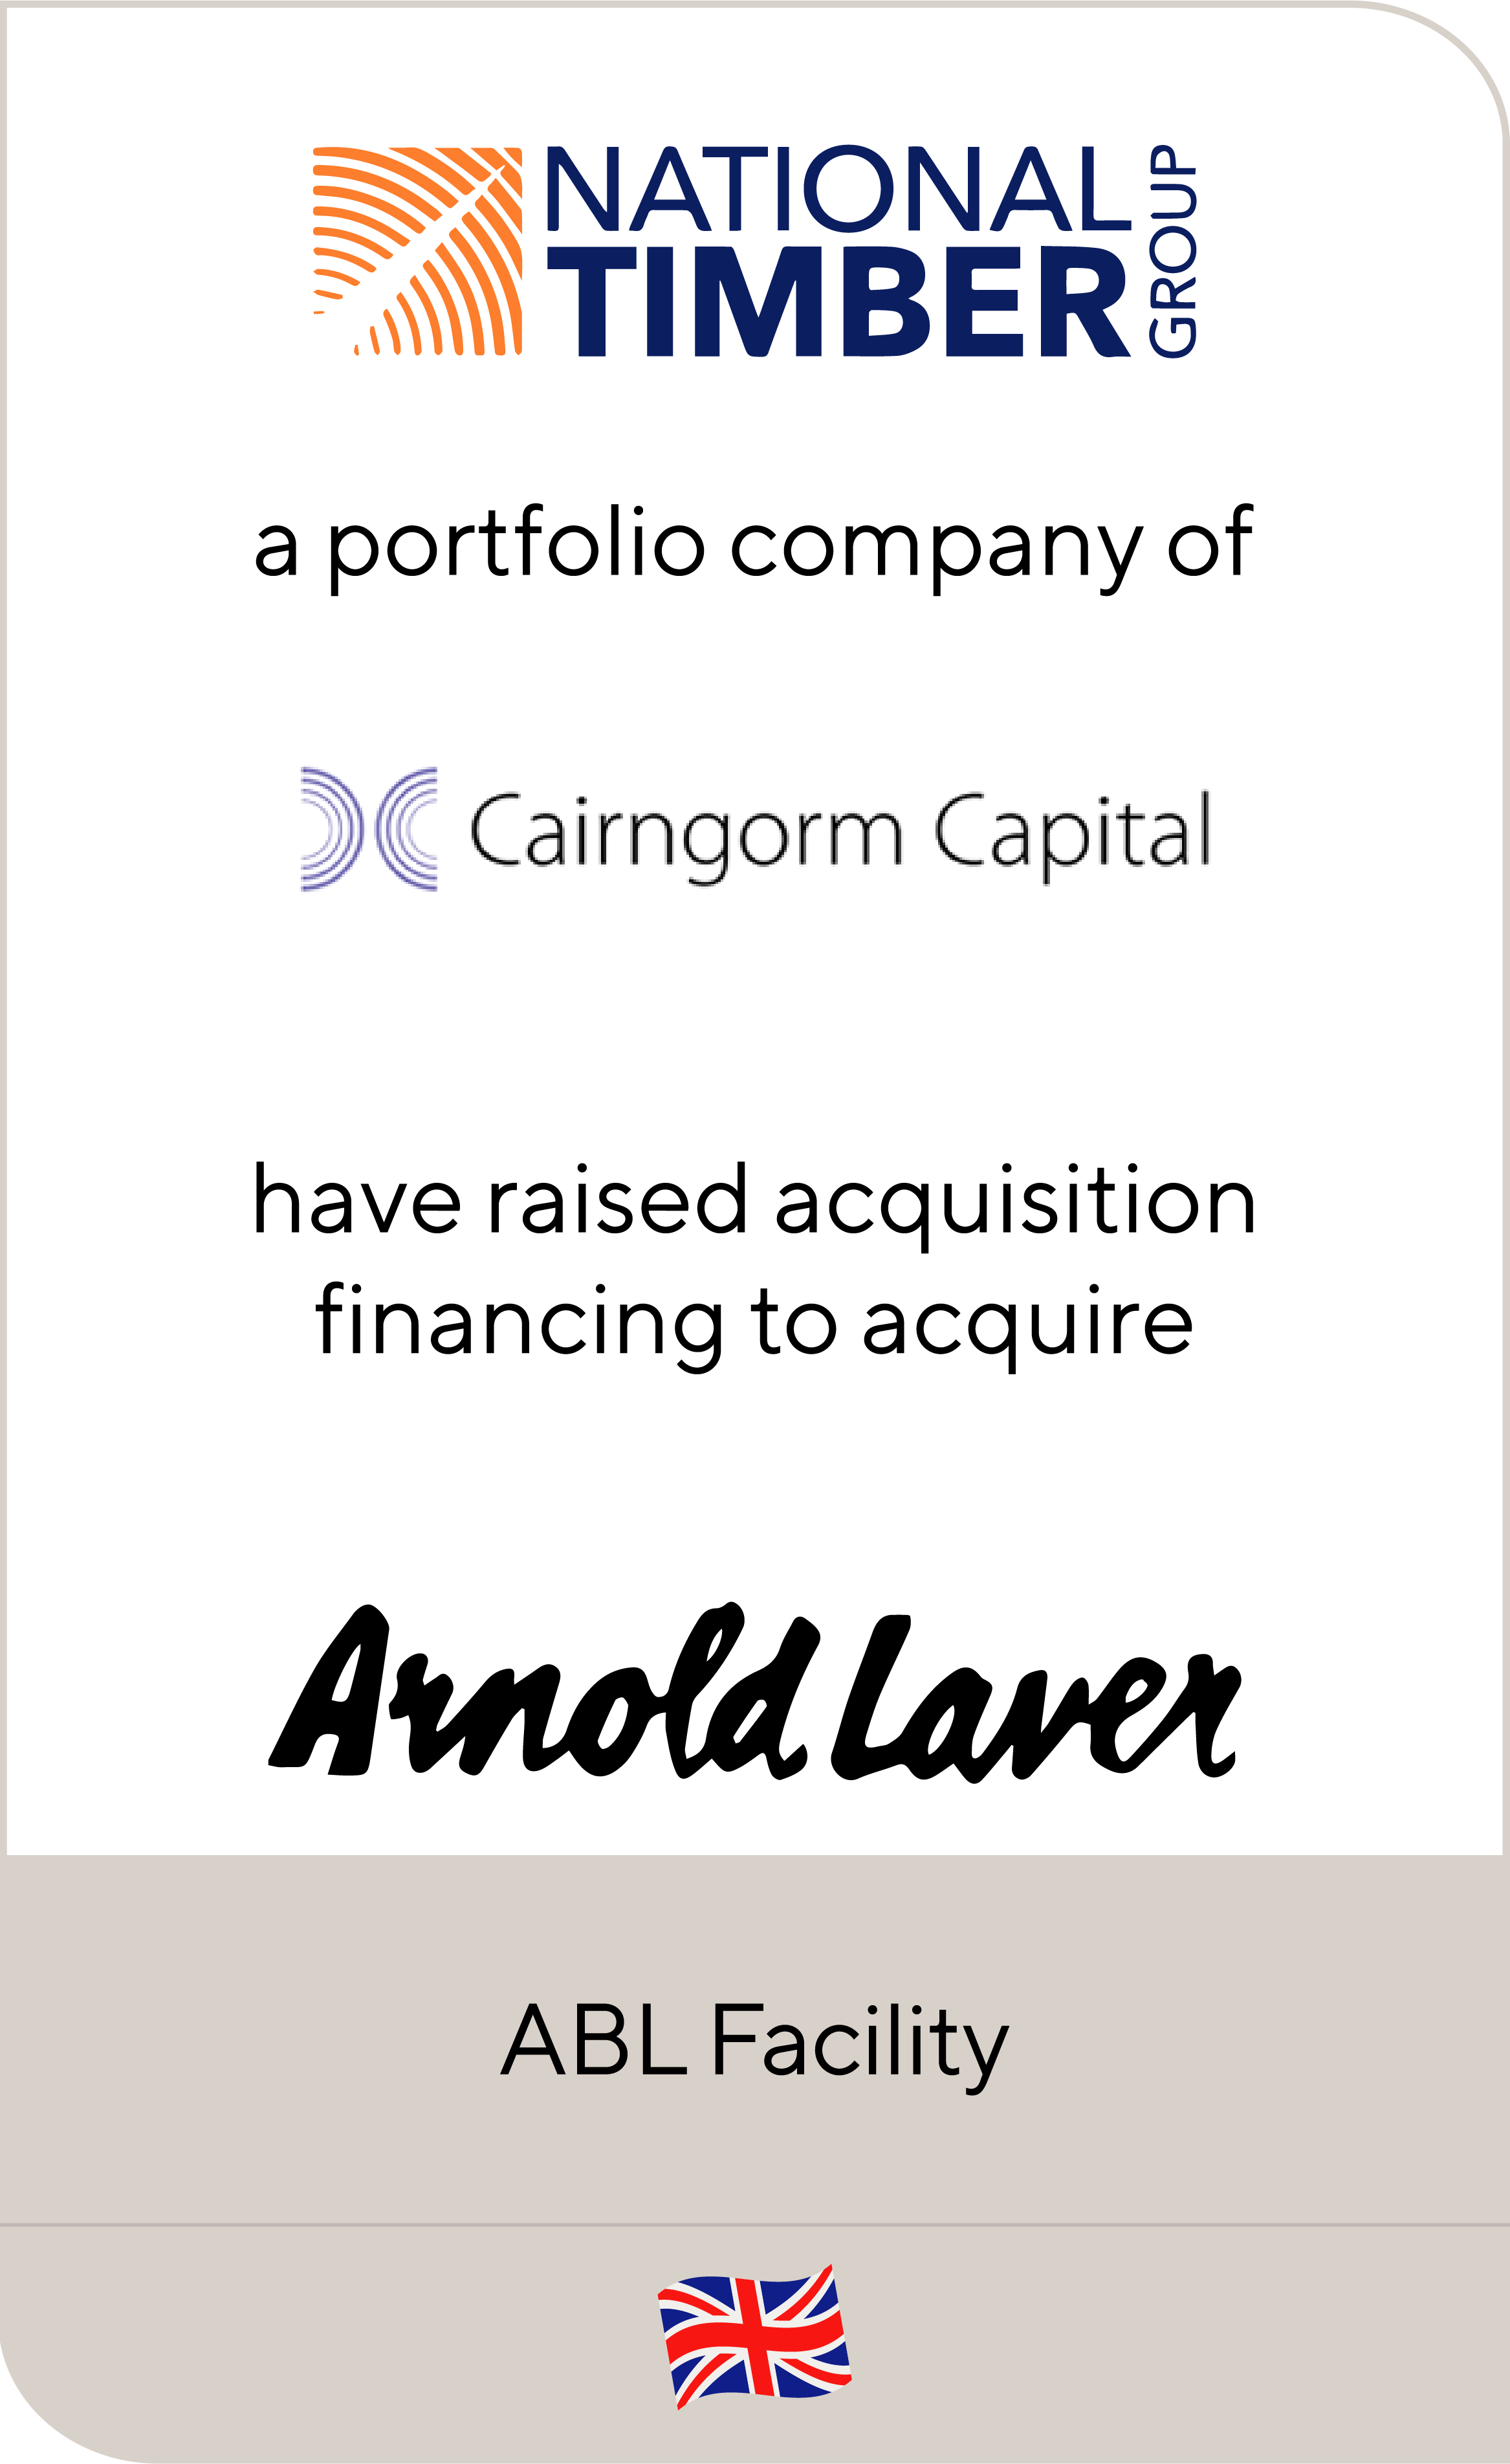 National Timber Grp Cairngorm Capital Arnold Laver 2017